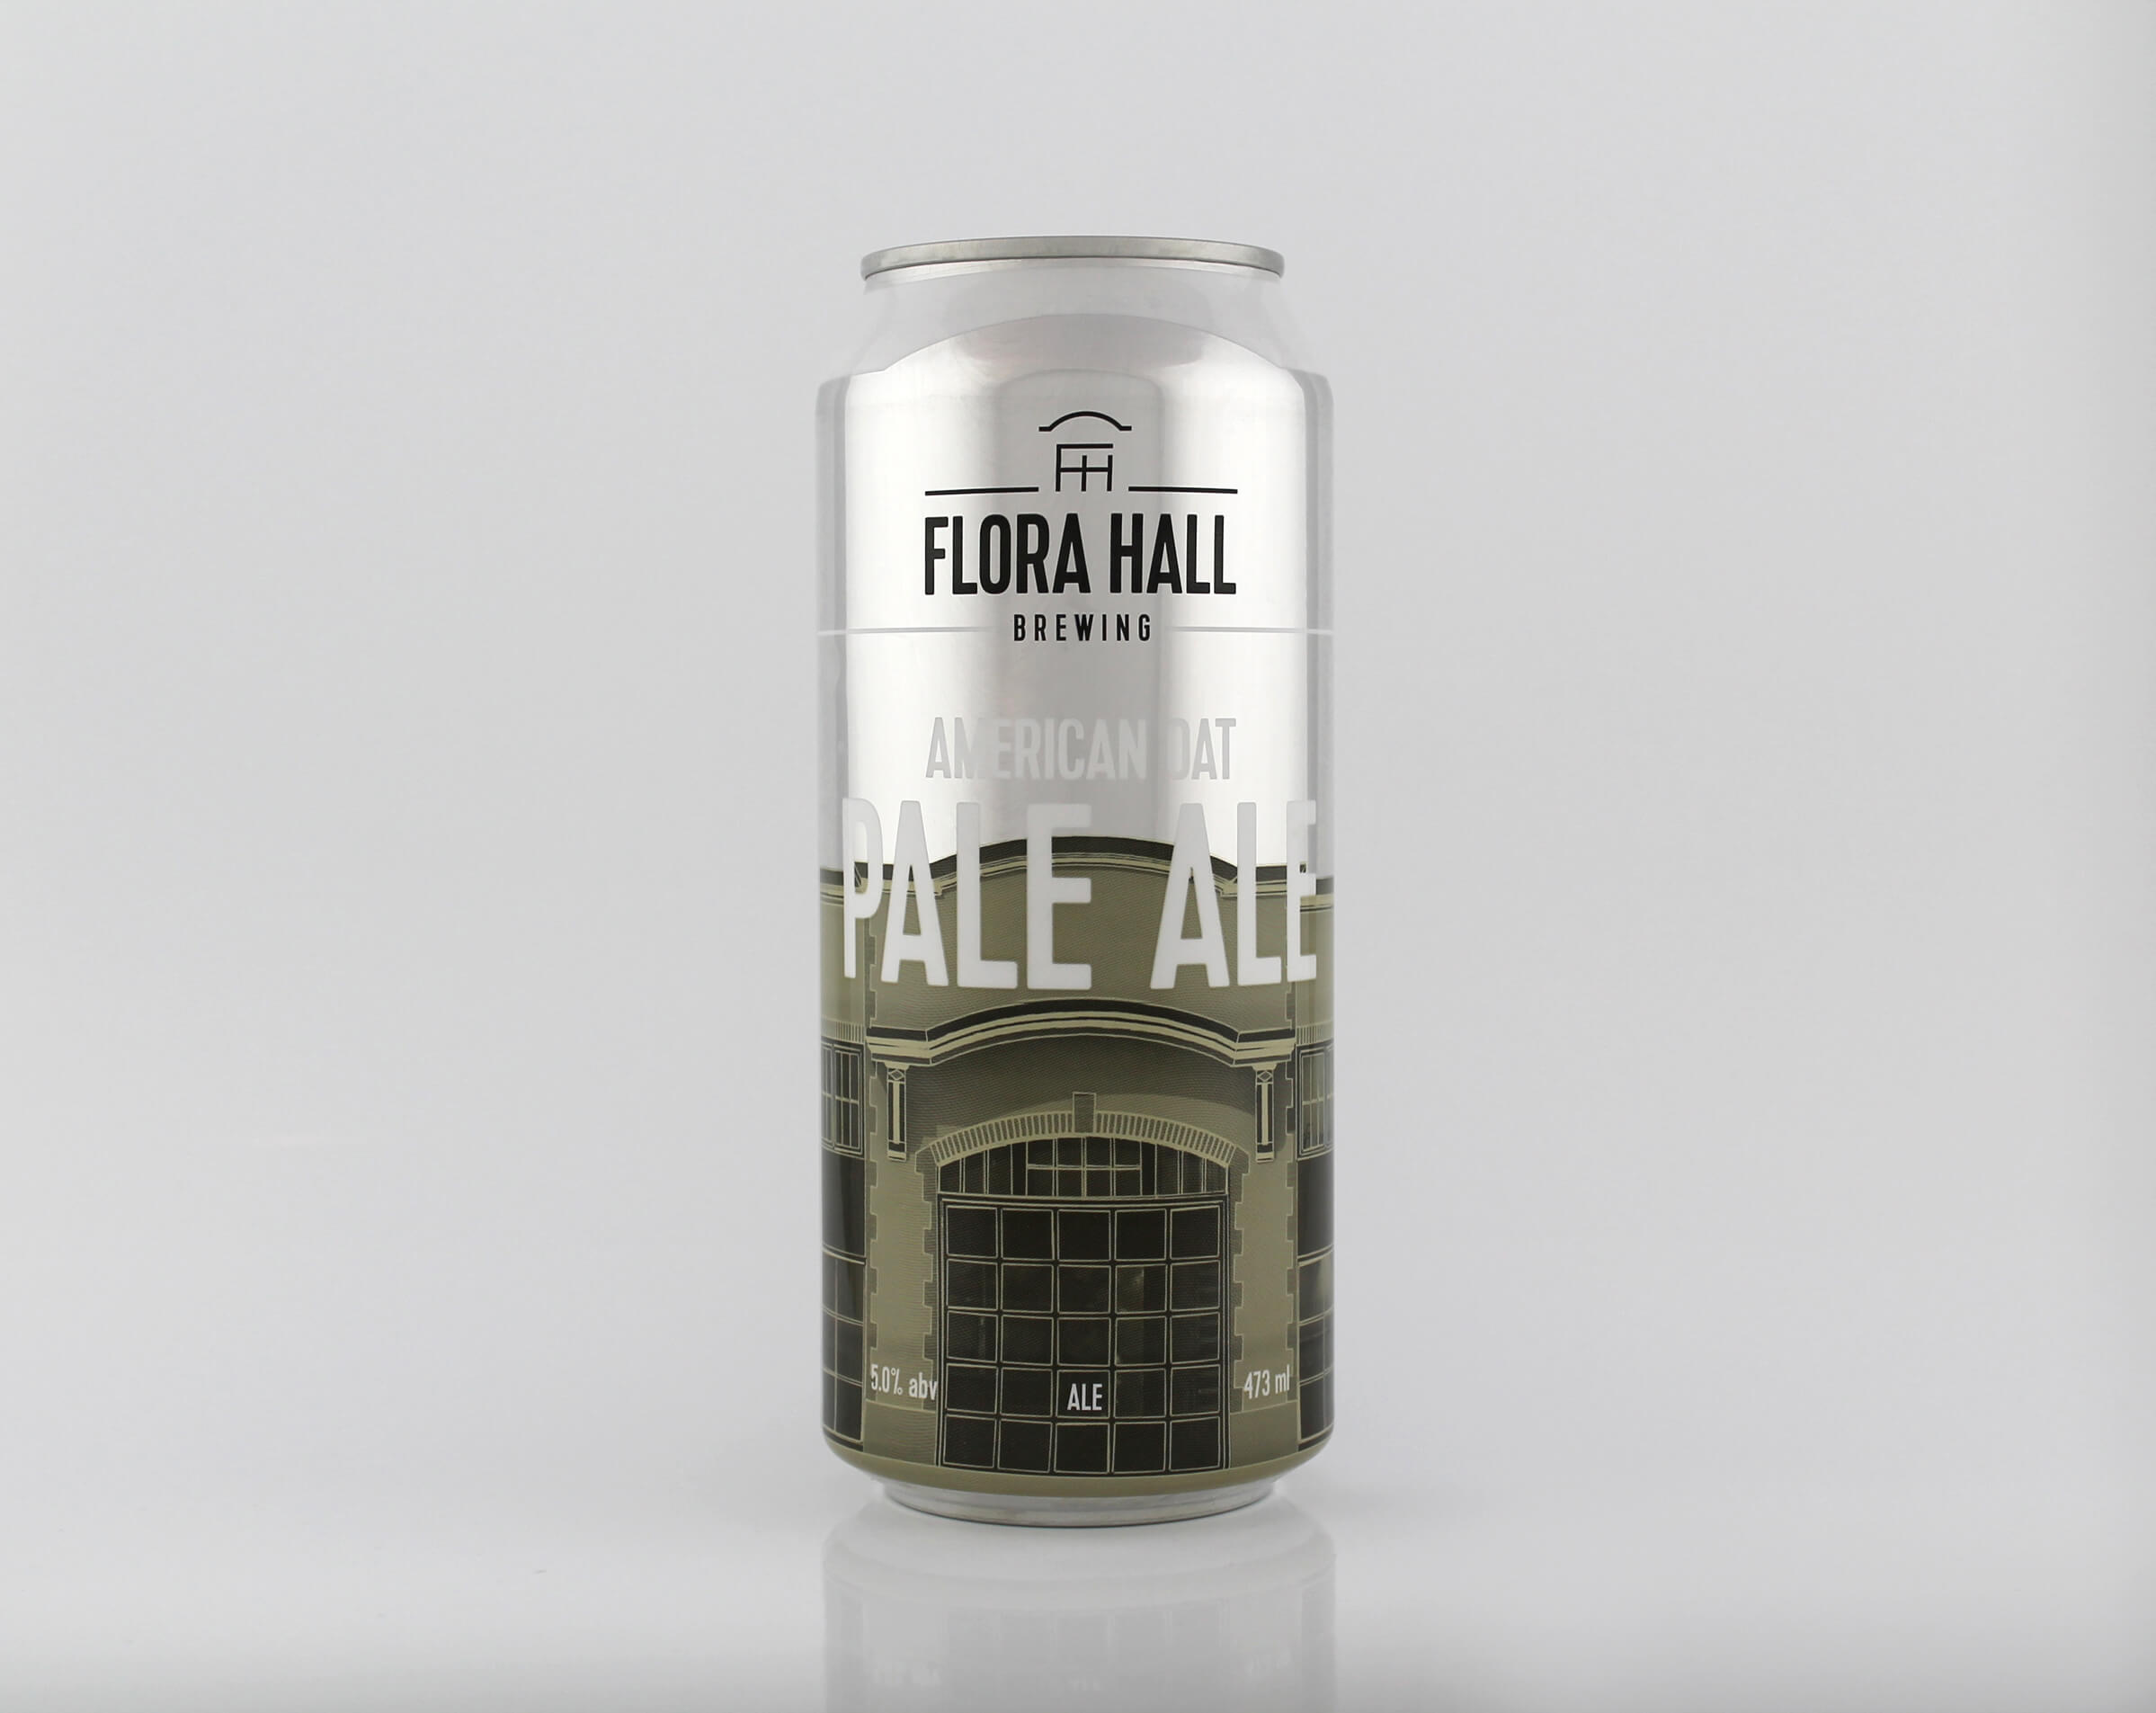 Beer can design for Flora Hall Brewing by Ottawa graphic designer idApostle